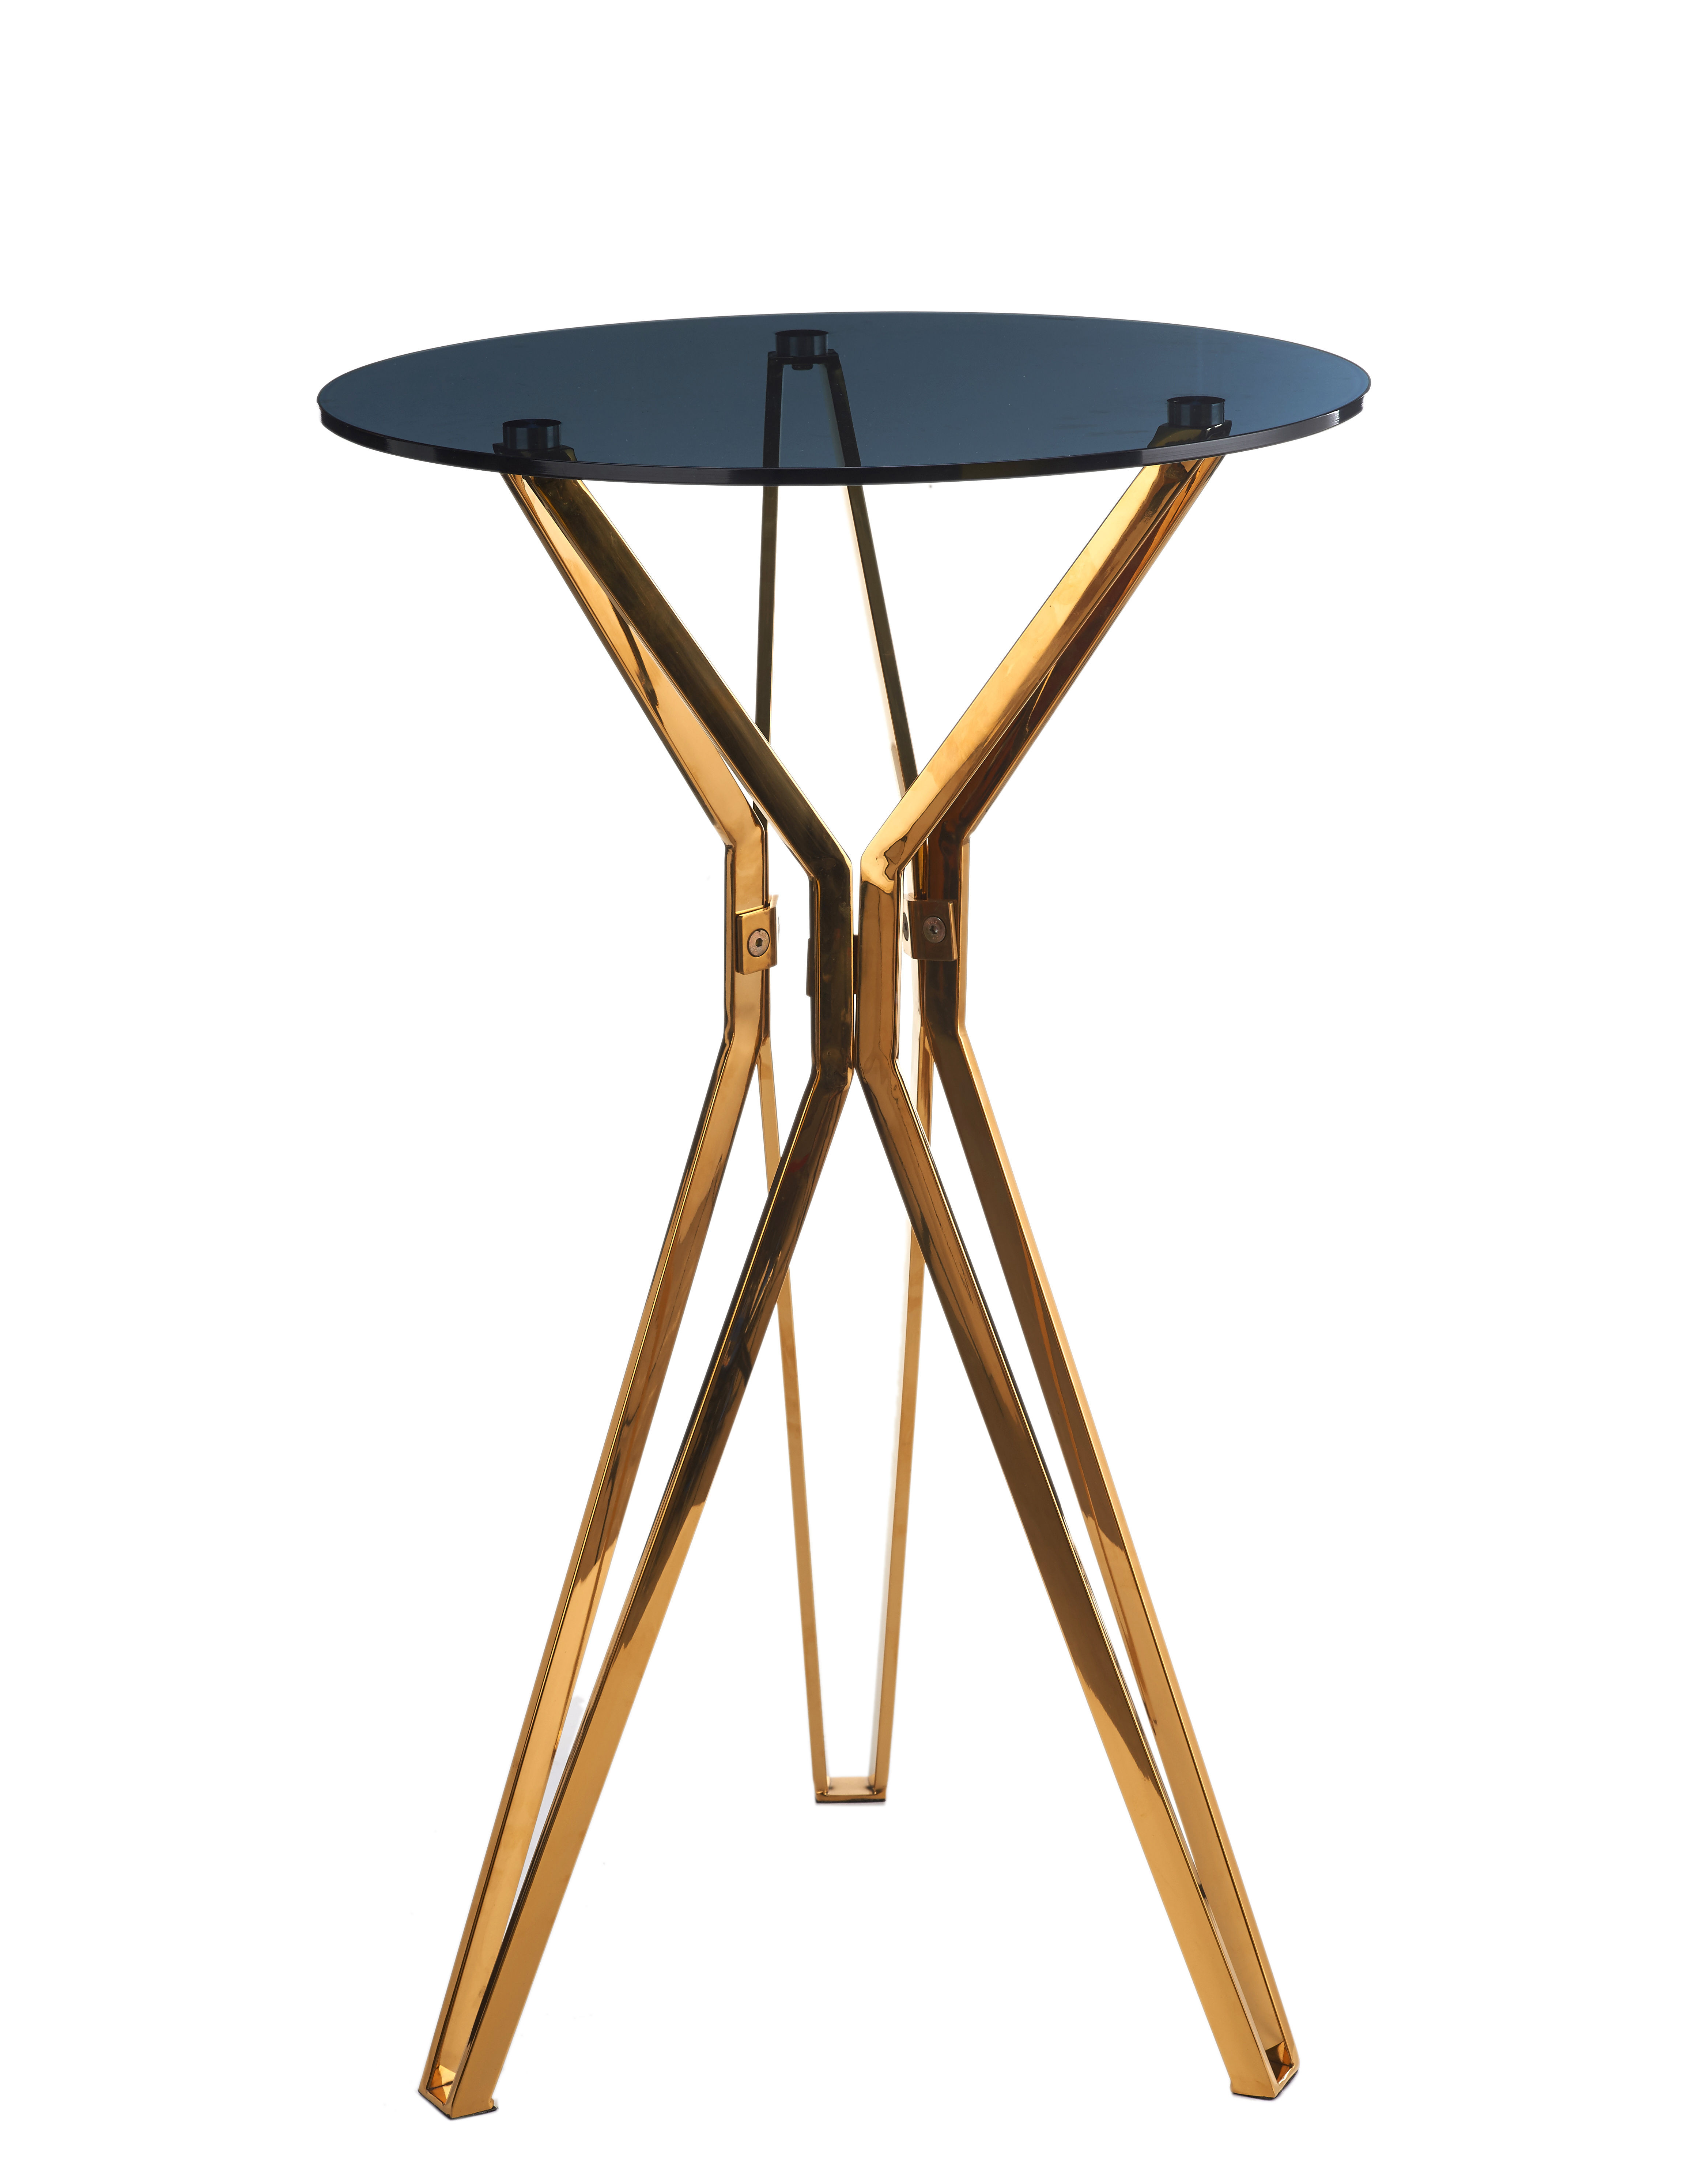 Furniture - High Tables - Gold & glass High table - / Ø 70 x H 100 cm by Pols Potten - Smoked black / Gold - Stainless steel, Verre trempé fumé